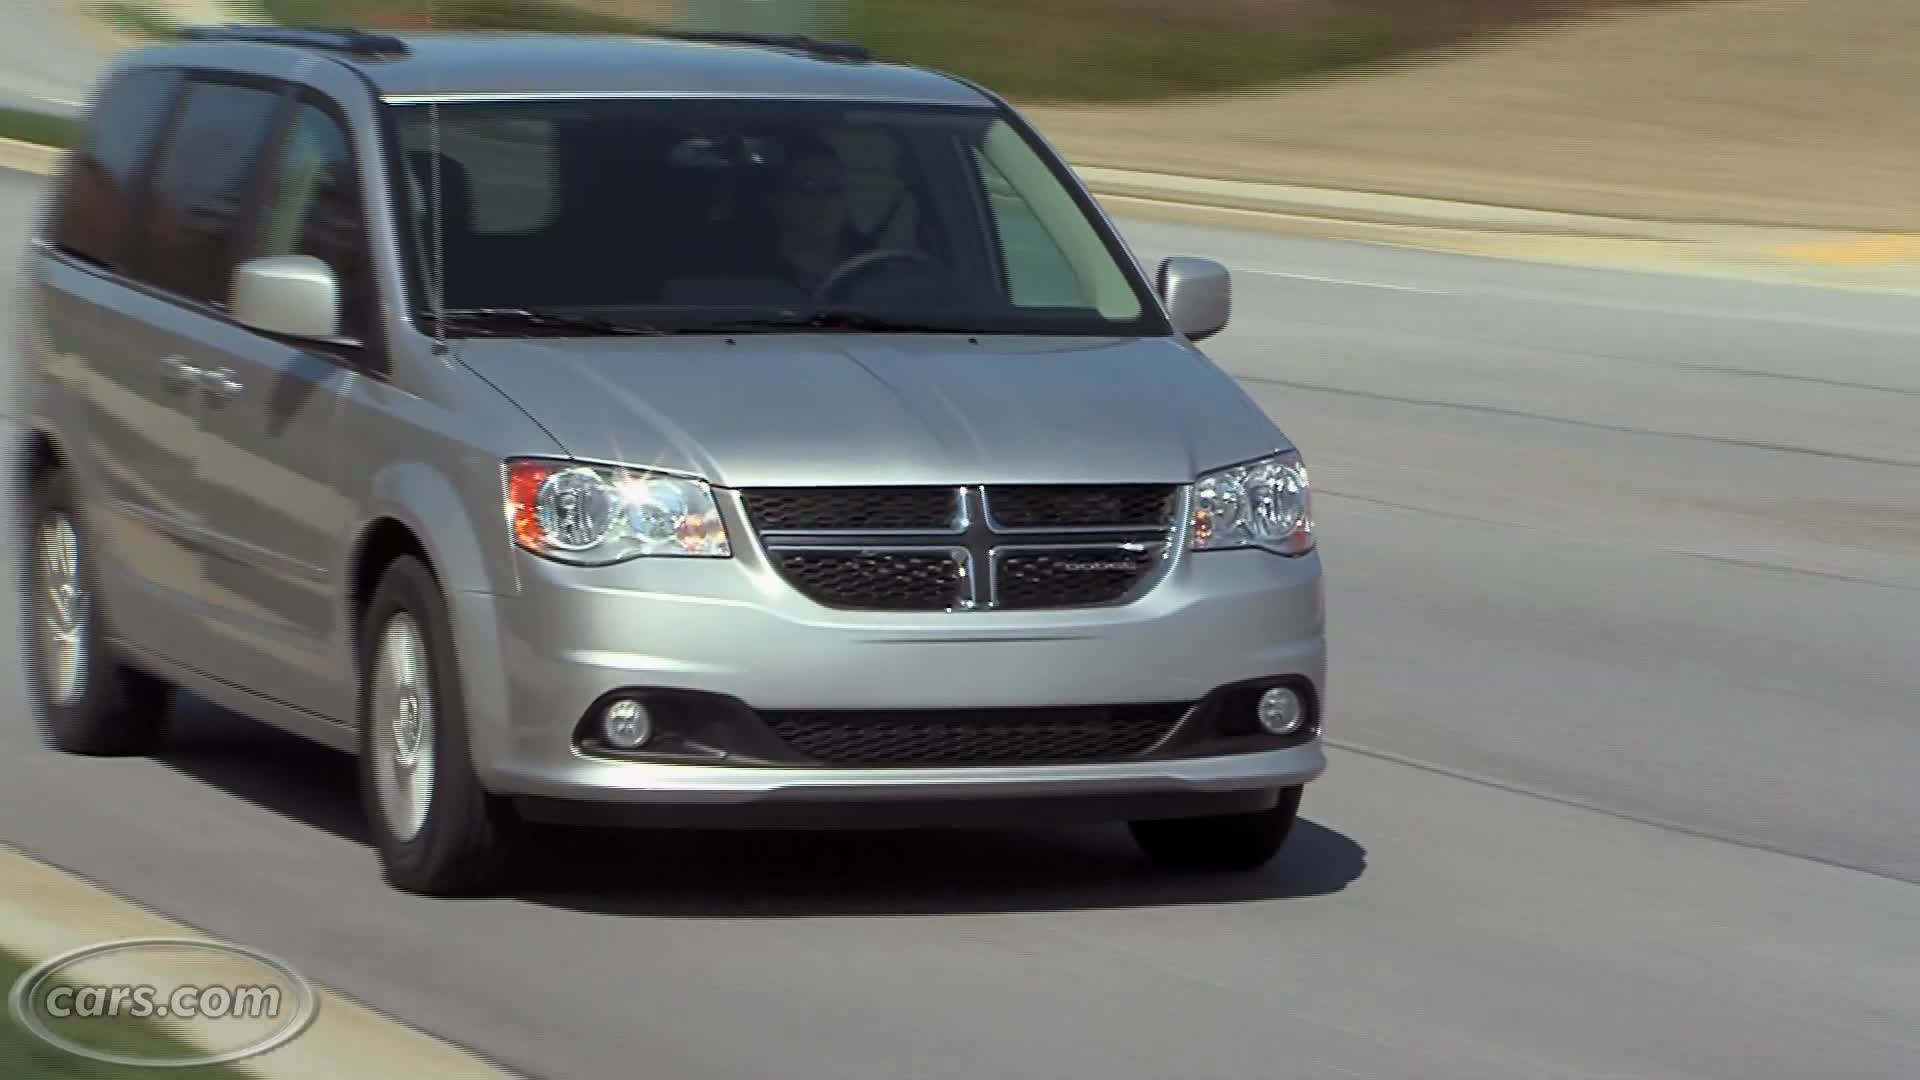 2011 dodge grand caravan specs price mpg reviews cars com 2011 dodge grand caravan specs price mpg reviews cars com